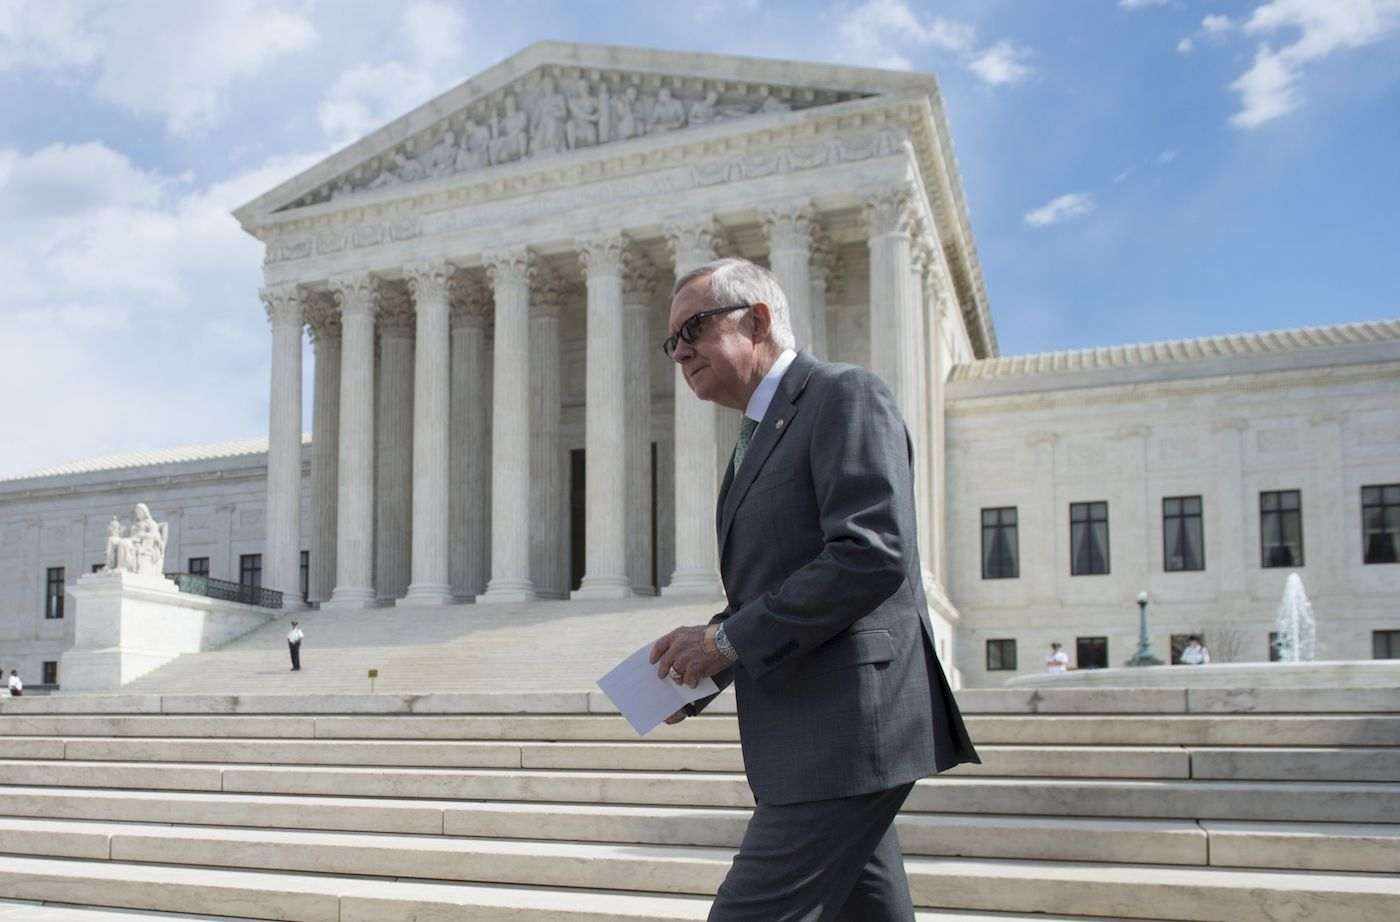 Senate Minority Leader Harry Reid told reporters Tuesday that Democrats have a few tricks up their sleeves to force a vote on President Barack Obama's Supreme Court nominee.